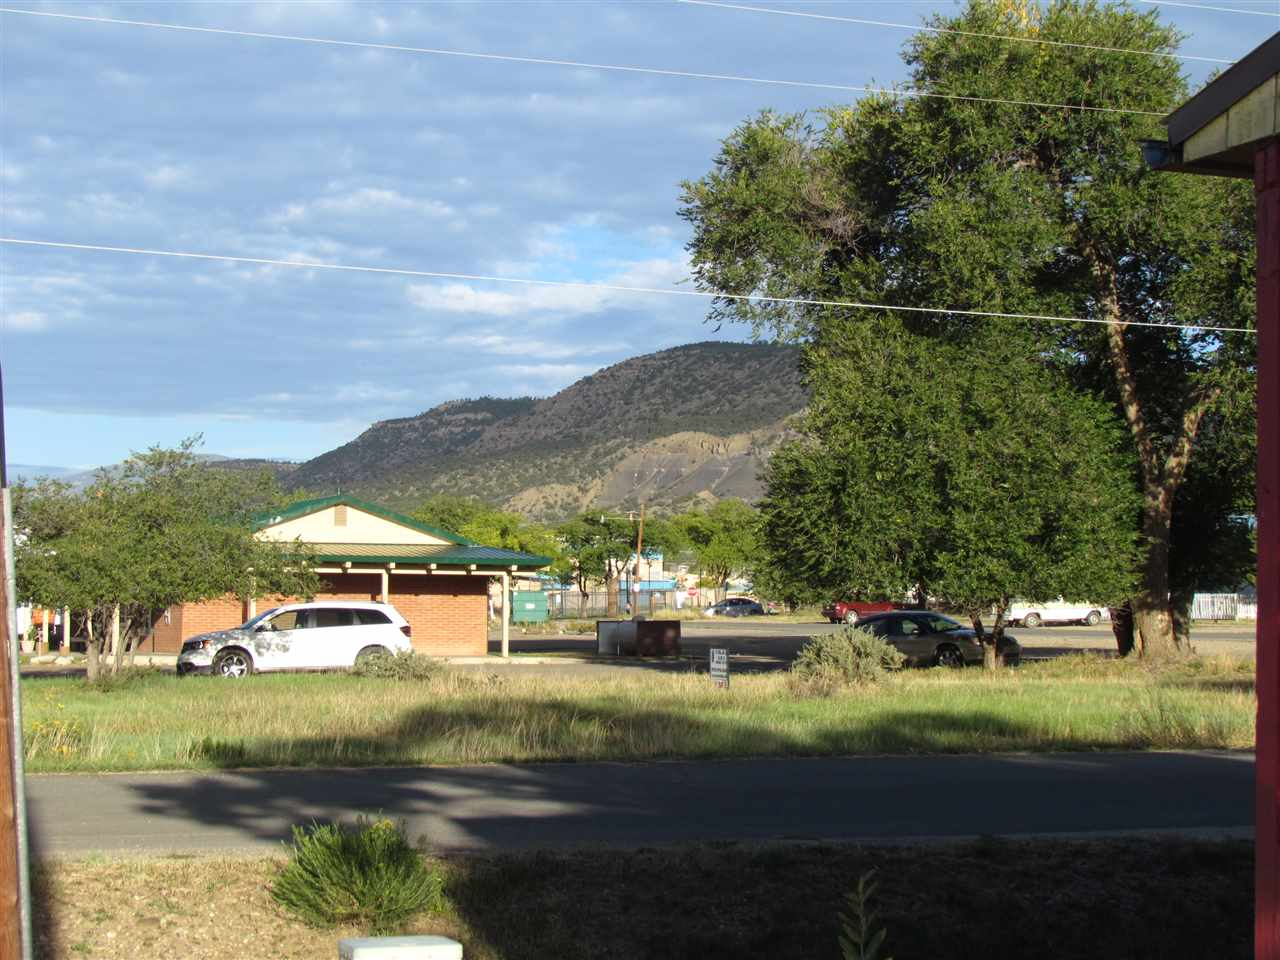 http://search.taosmls.net/taos_mls/images/90937-1.JPG